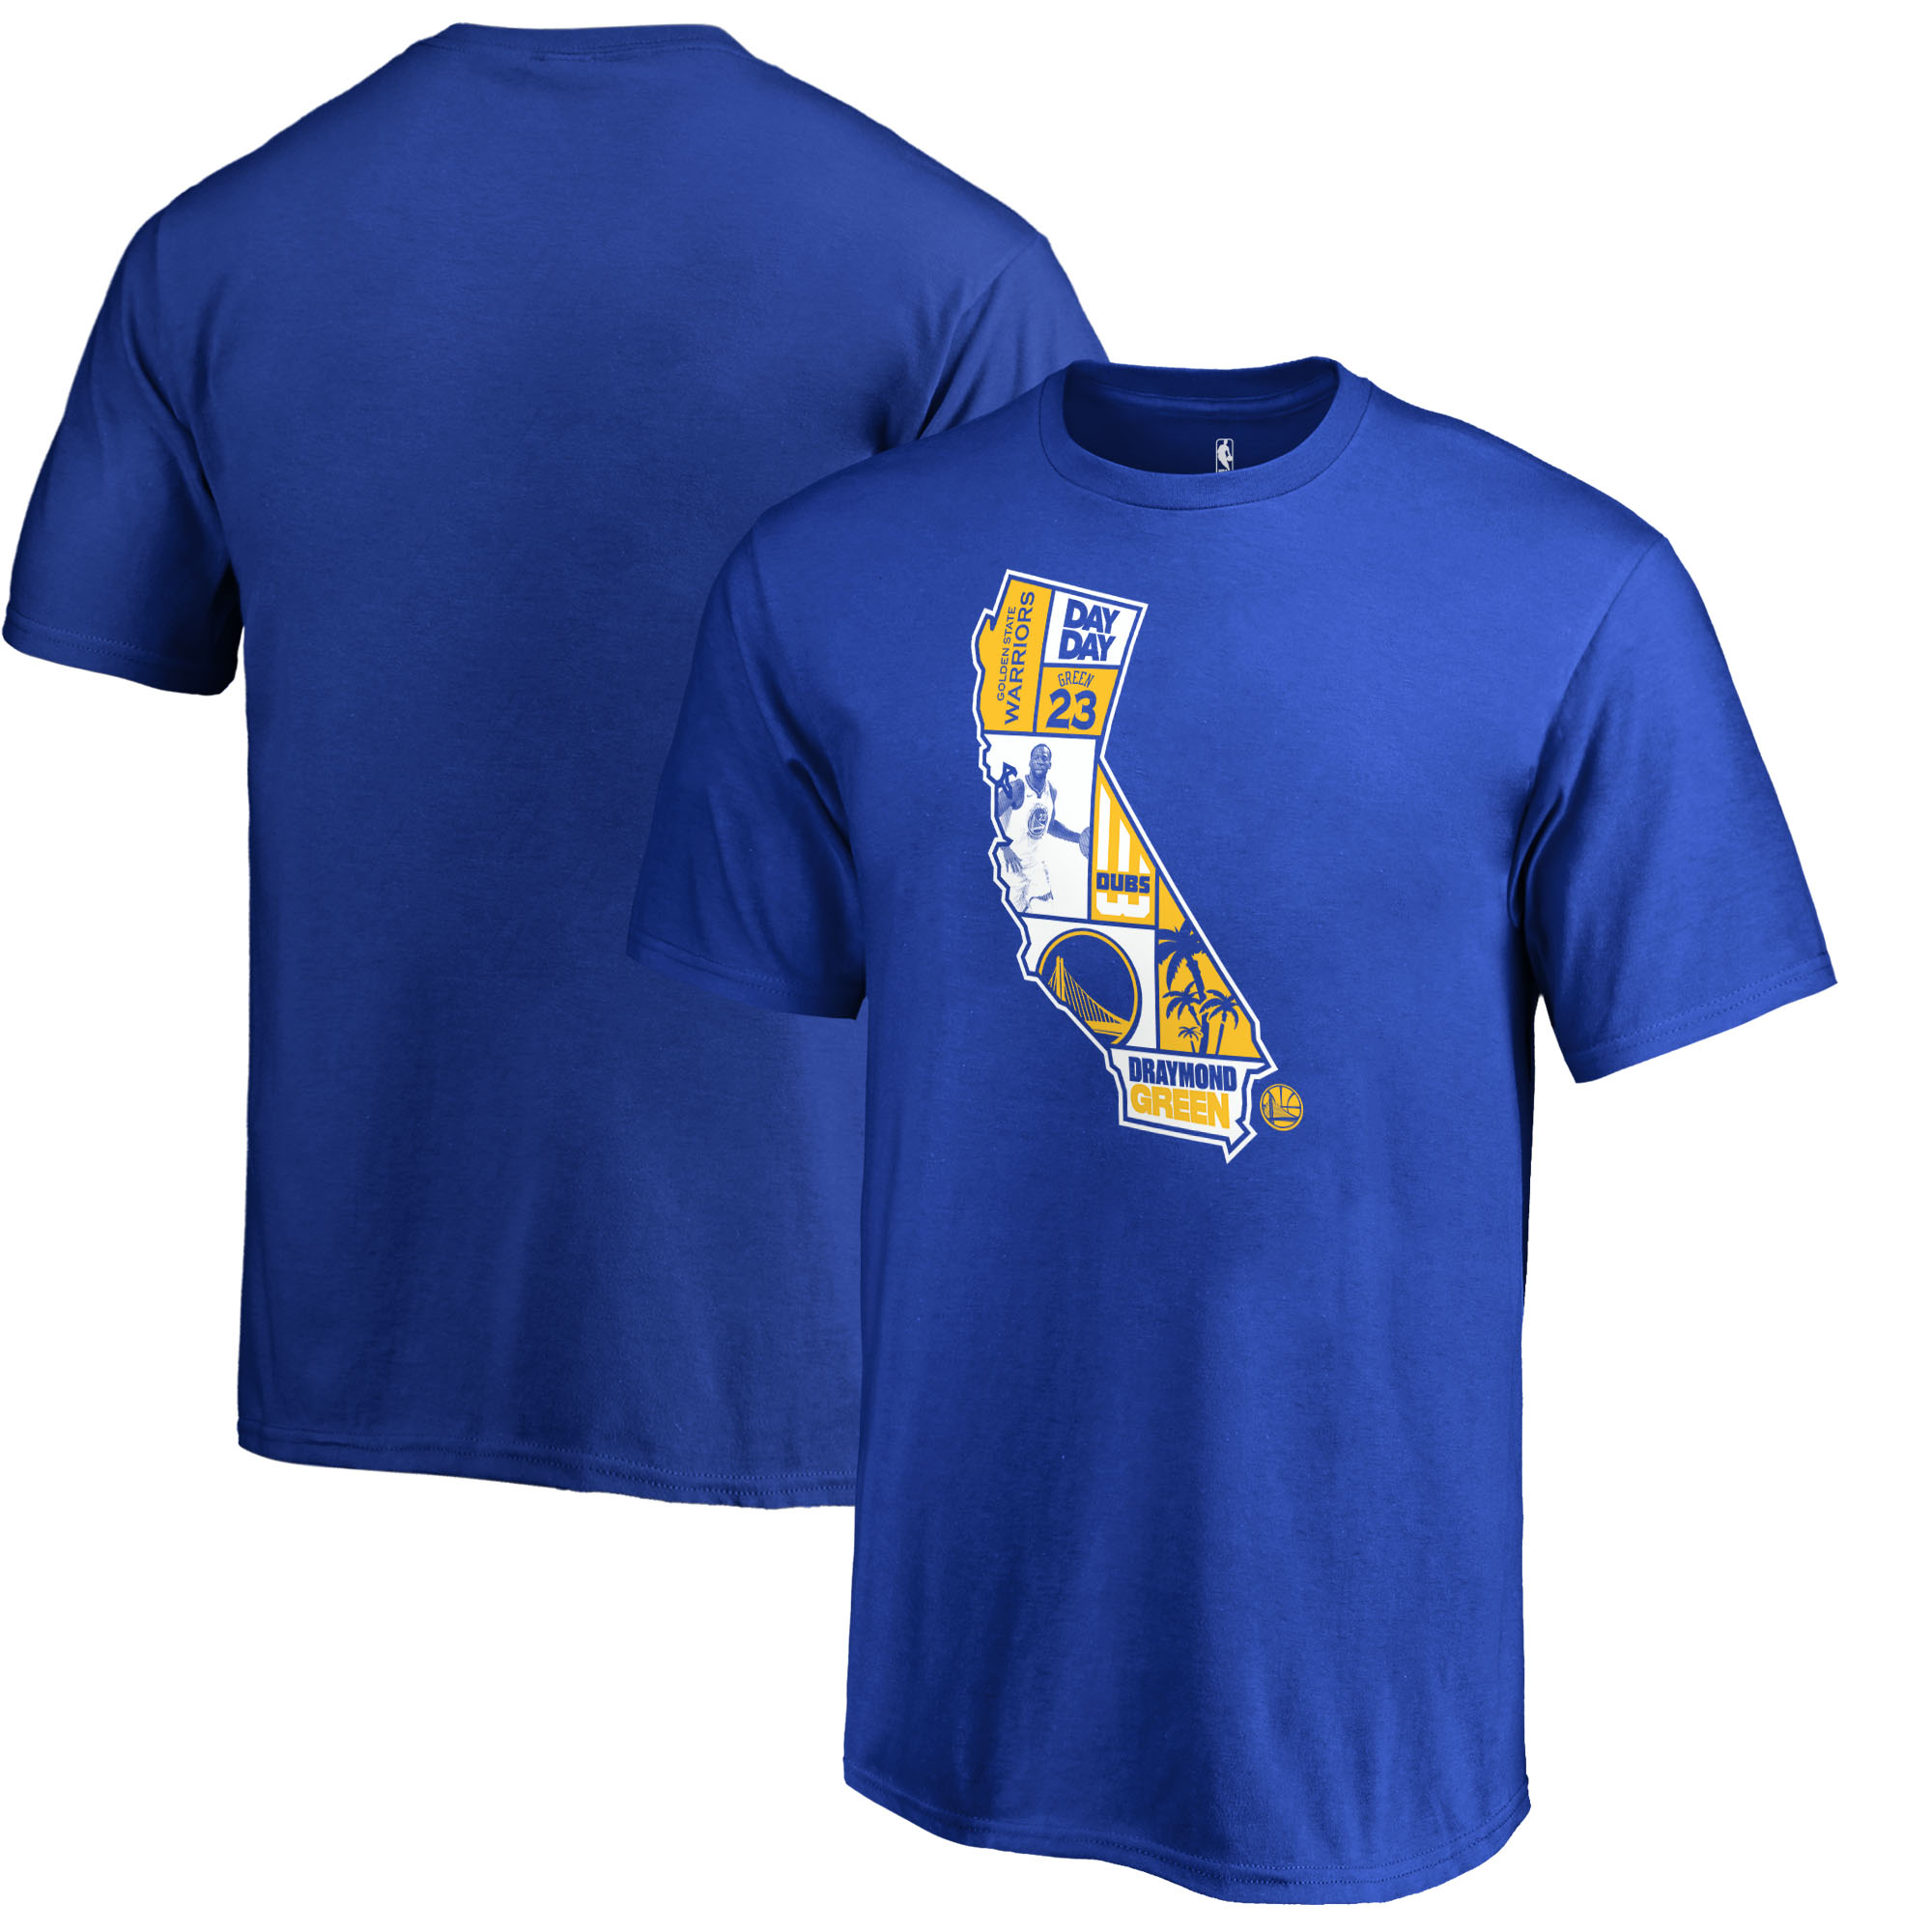 Draymond Green Golden State Warriors Fanatics Branded Youth Player State T-Shirt - Royal